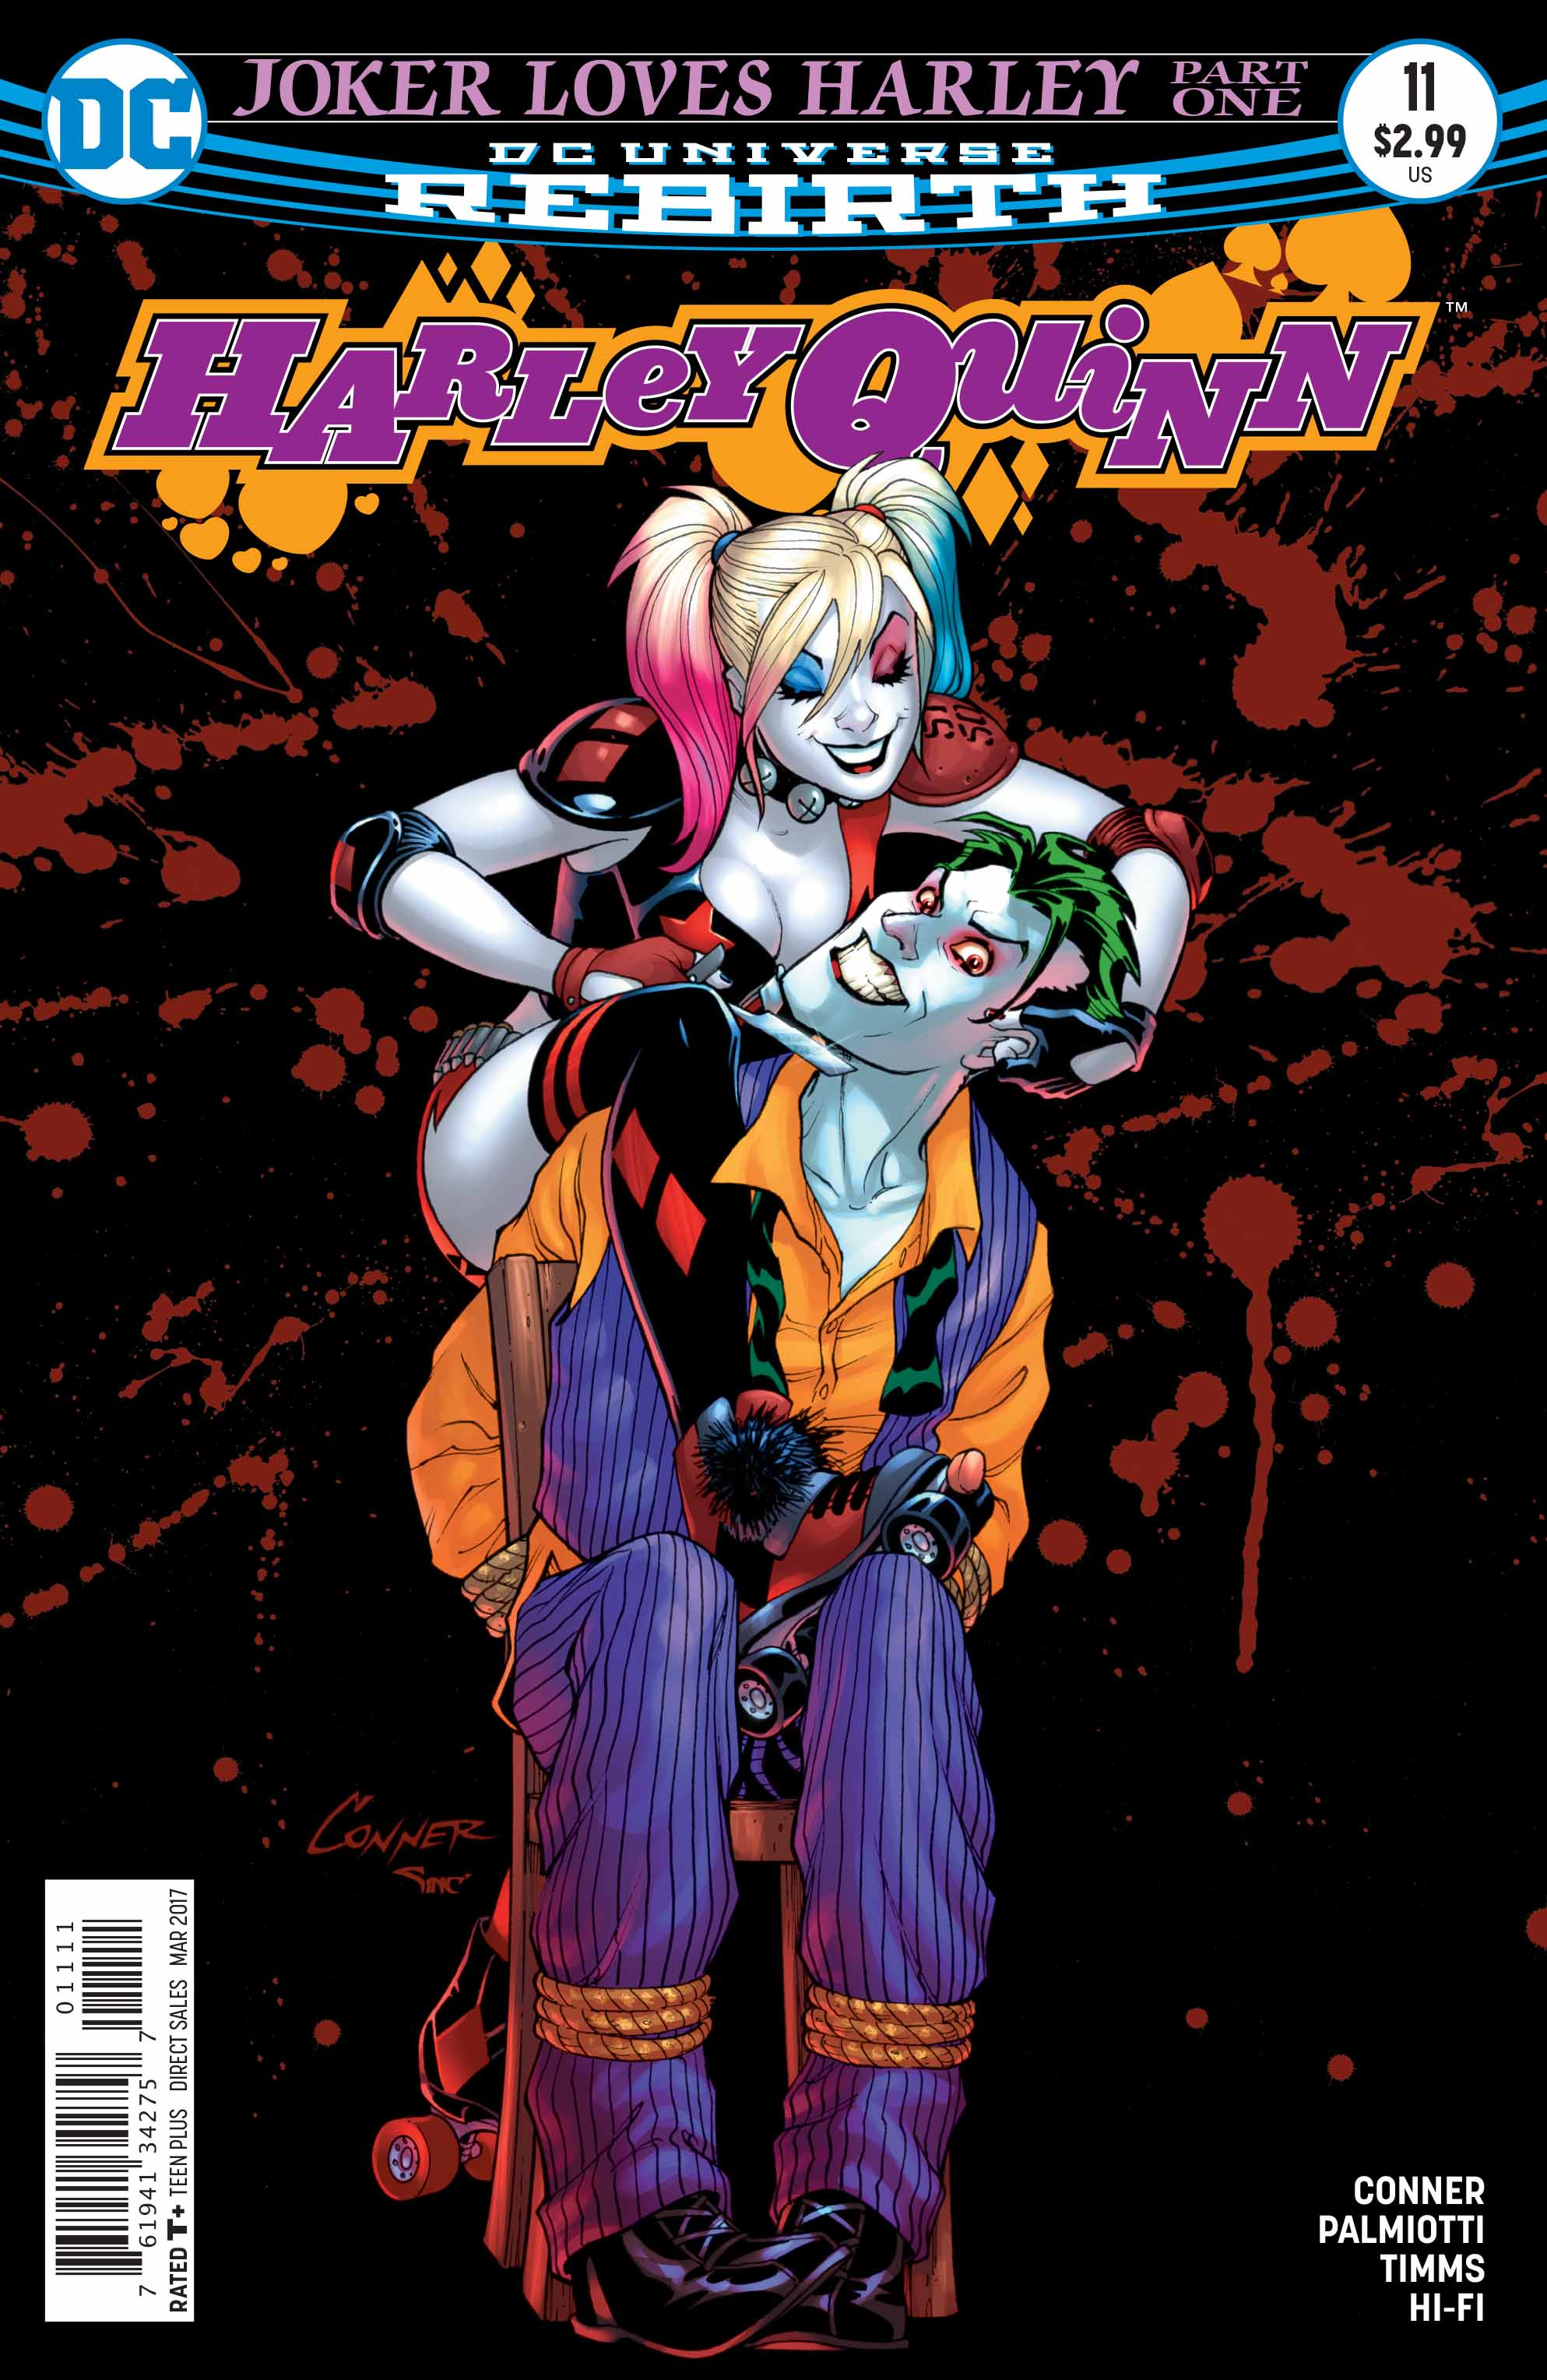 Harley Quinn #11 Review